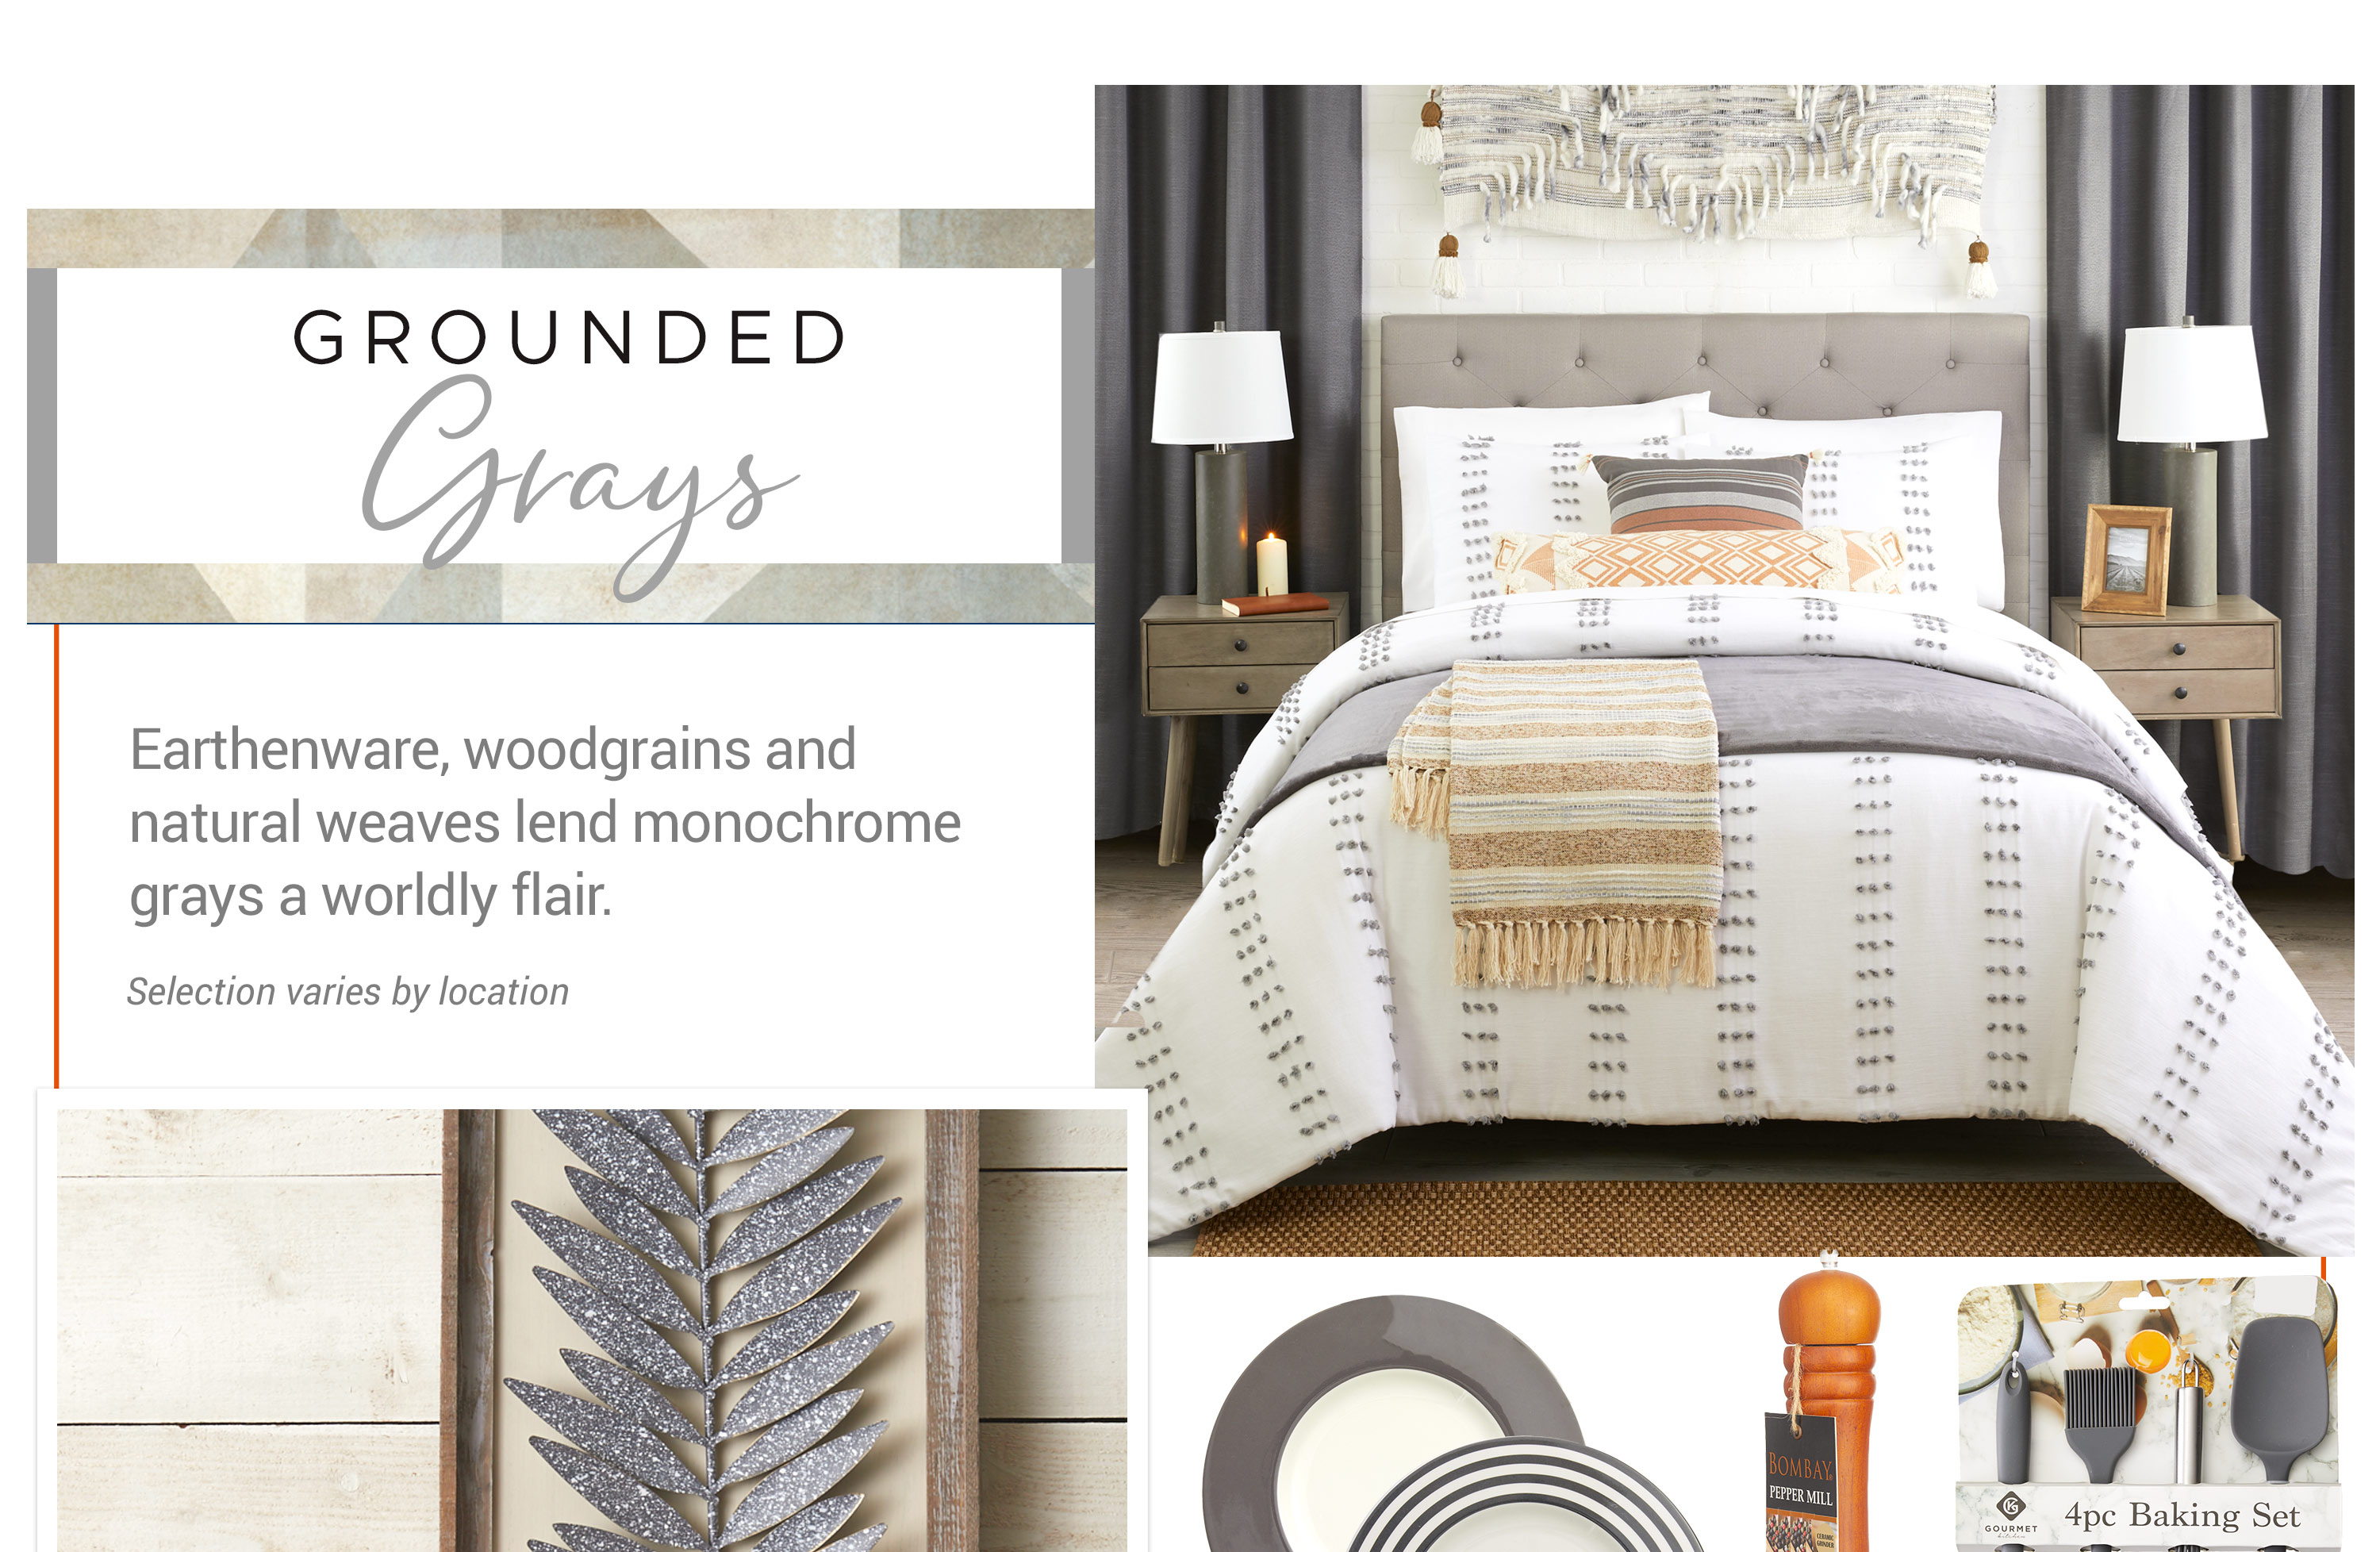 Grounded Grays - Earthenware, woodgrains and natural weaves lend monochrome grays a worldly flair.